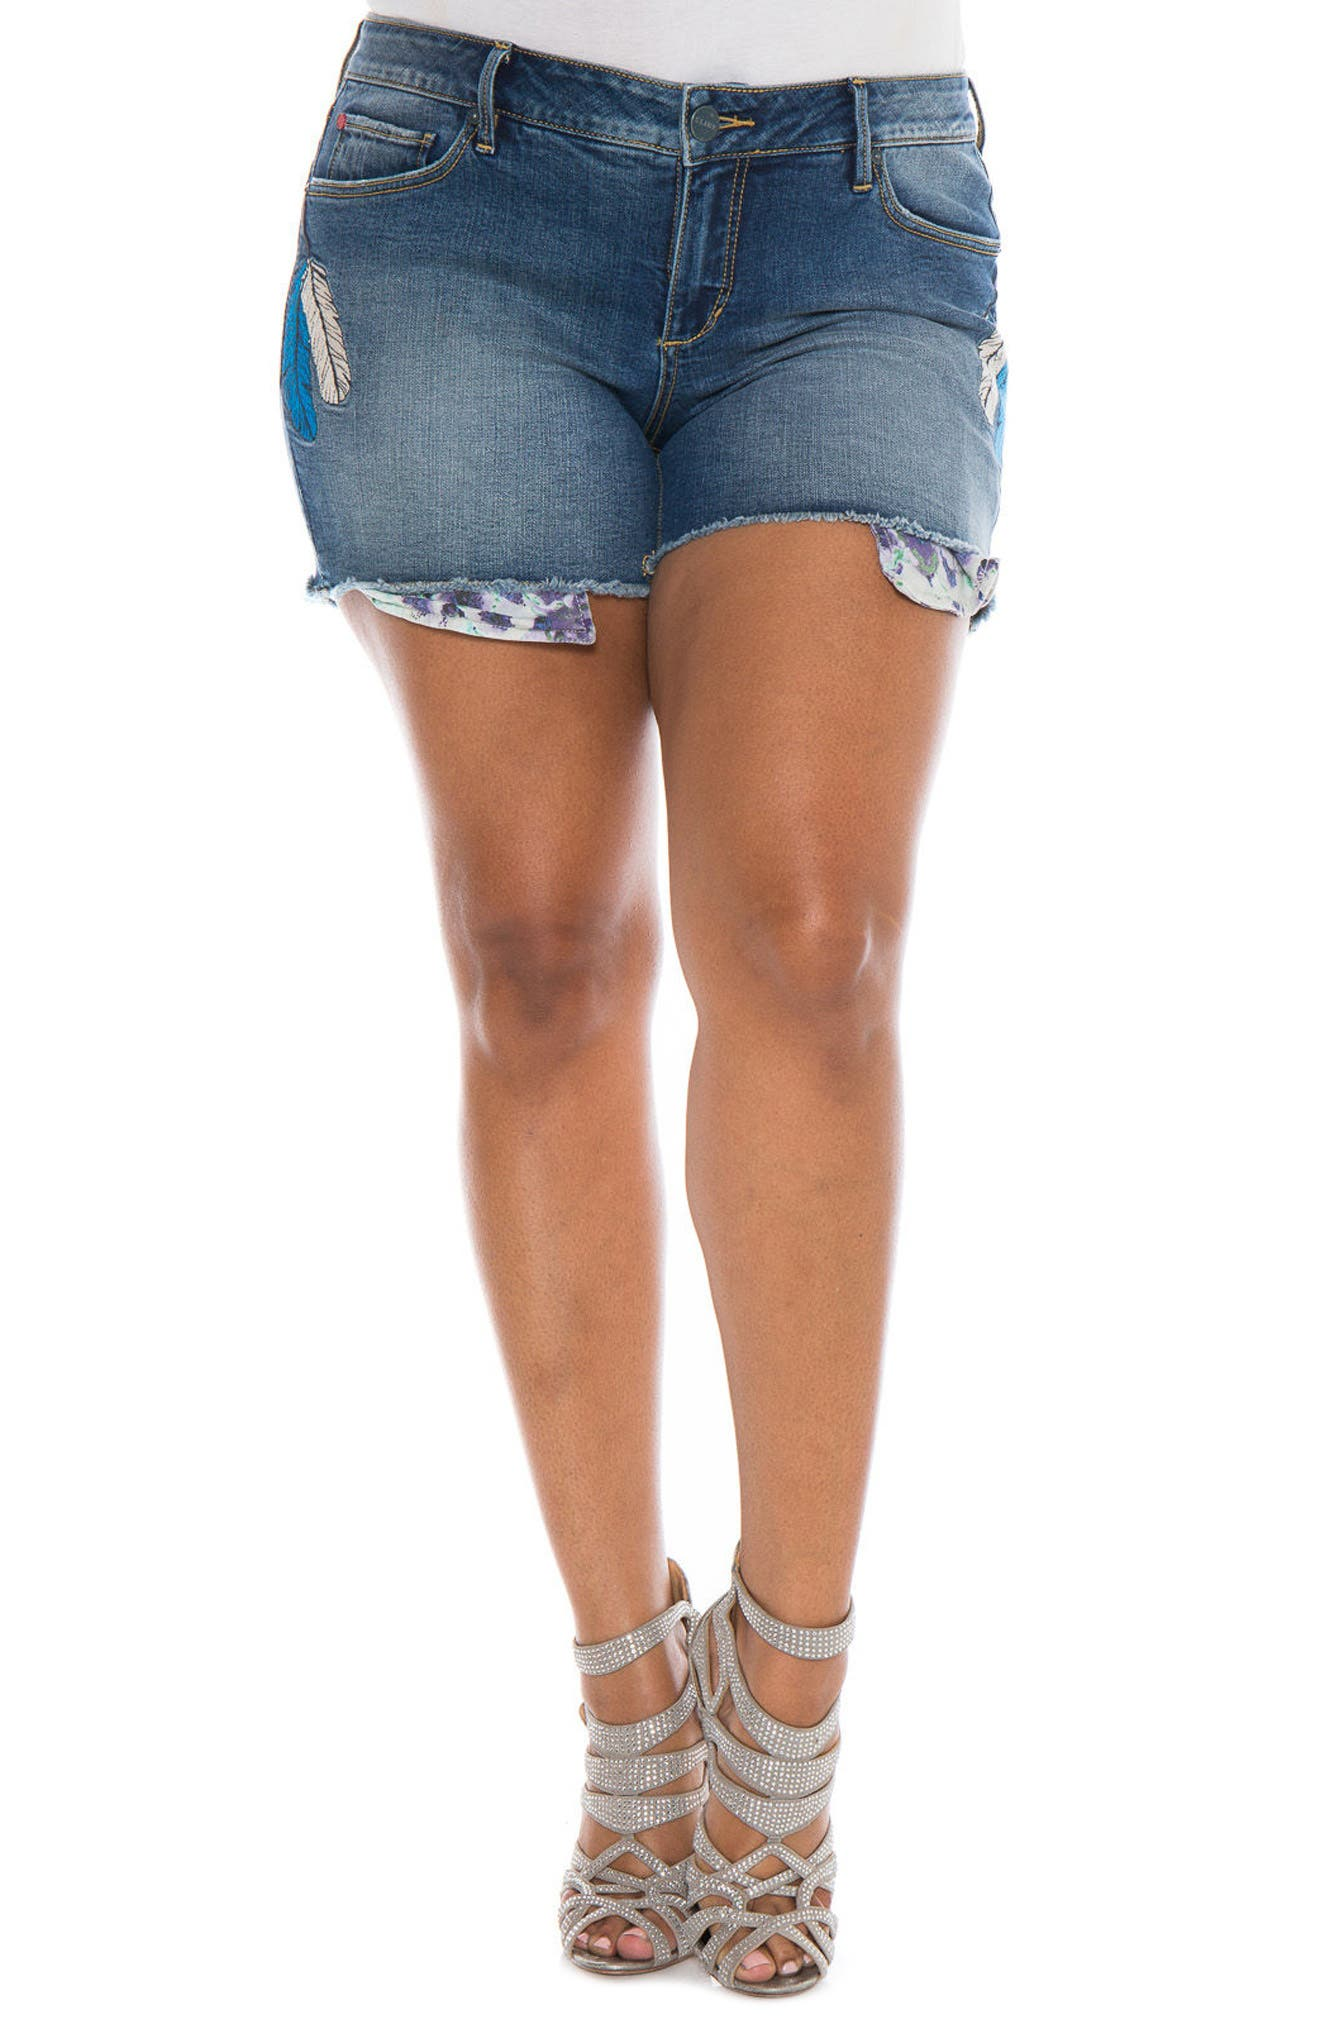 SLINK Jeans Embroidered Cutoff Denim Shorts (Plus Size)